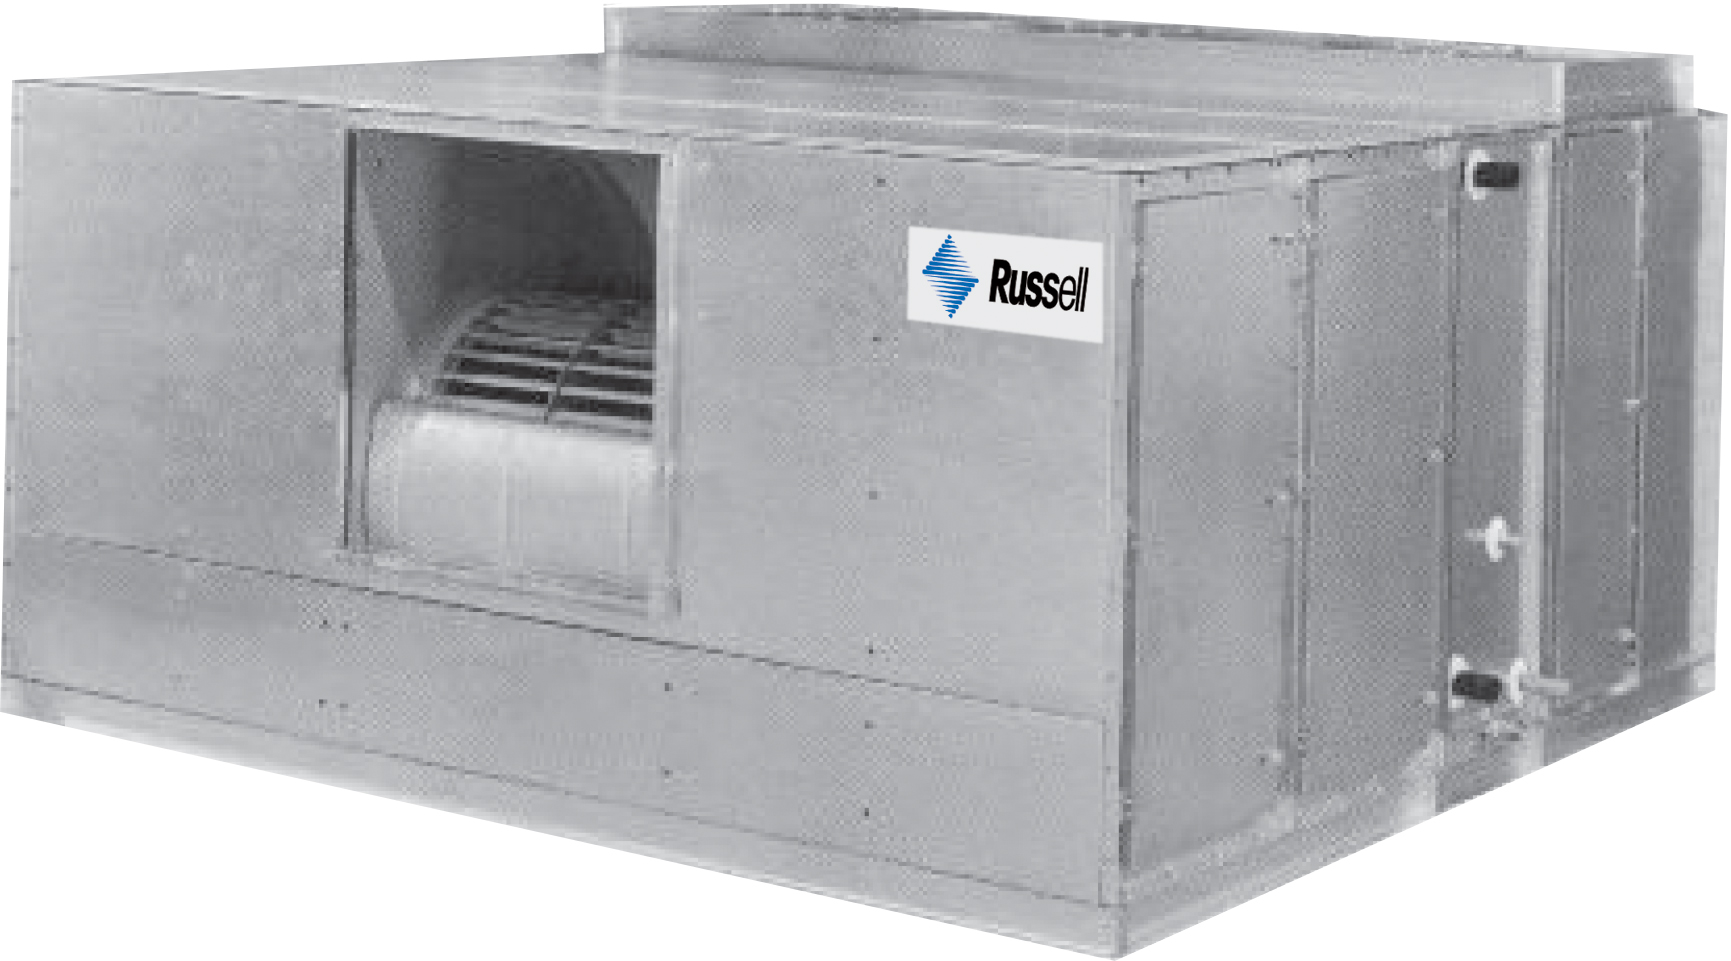 #2E6A9D Russell Central Station Air Handlers Highly Rated 4599 Hydronic Coil Air Handler wallpapers with 1731x961 px on helpvideos.info - Air Conditioners, Air Coolers and more